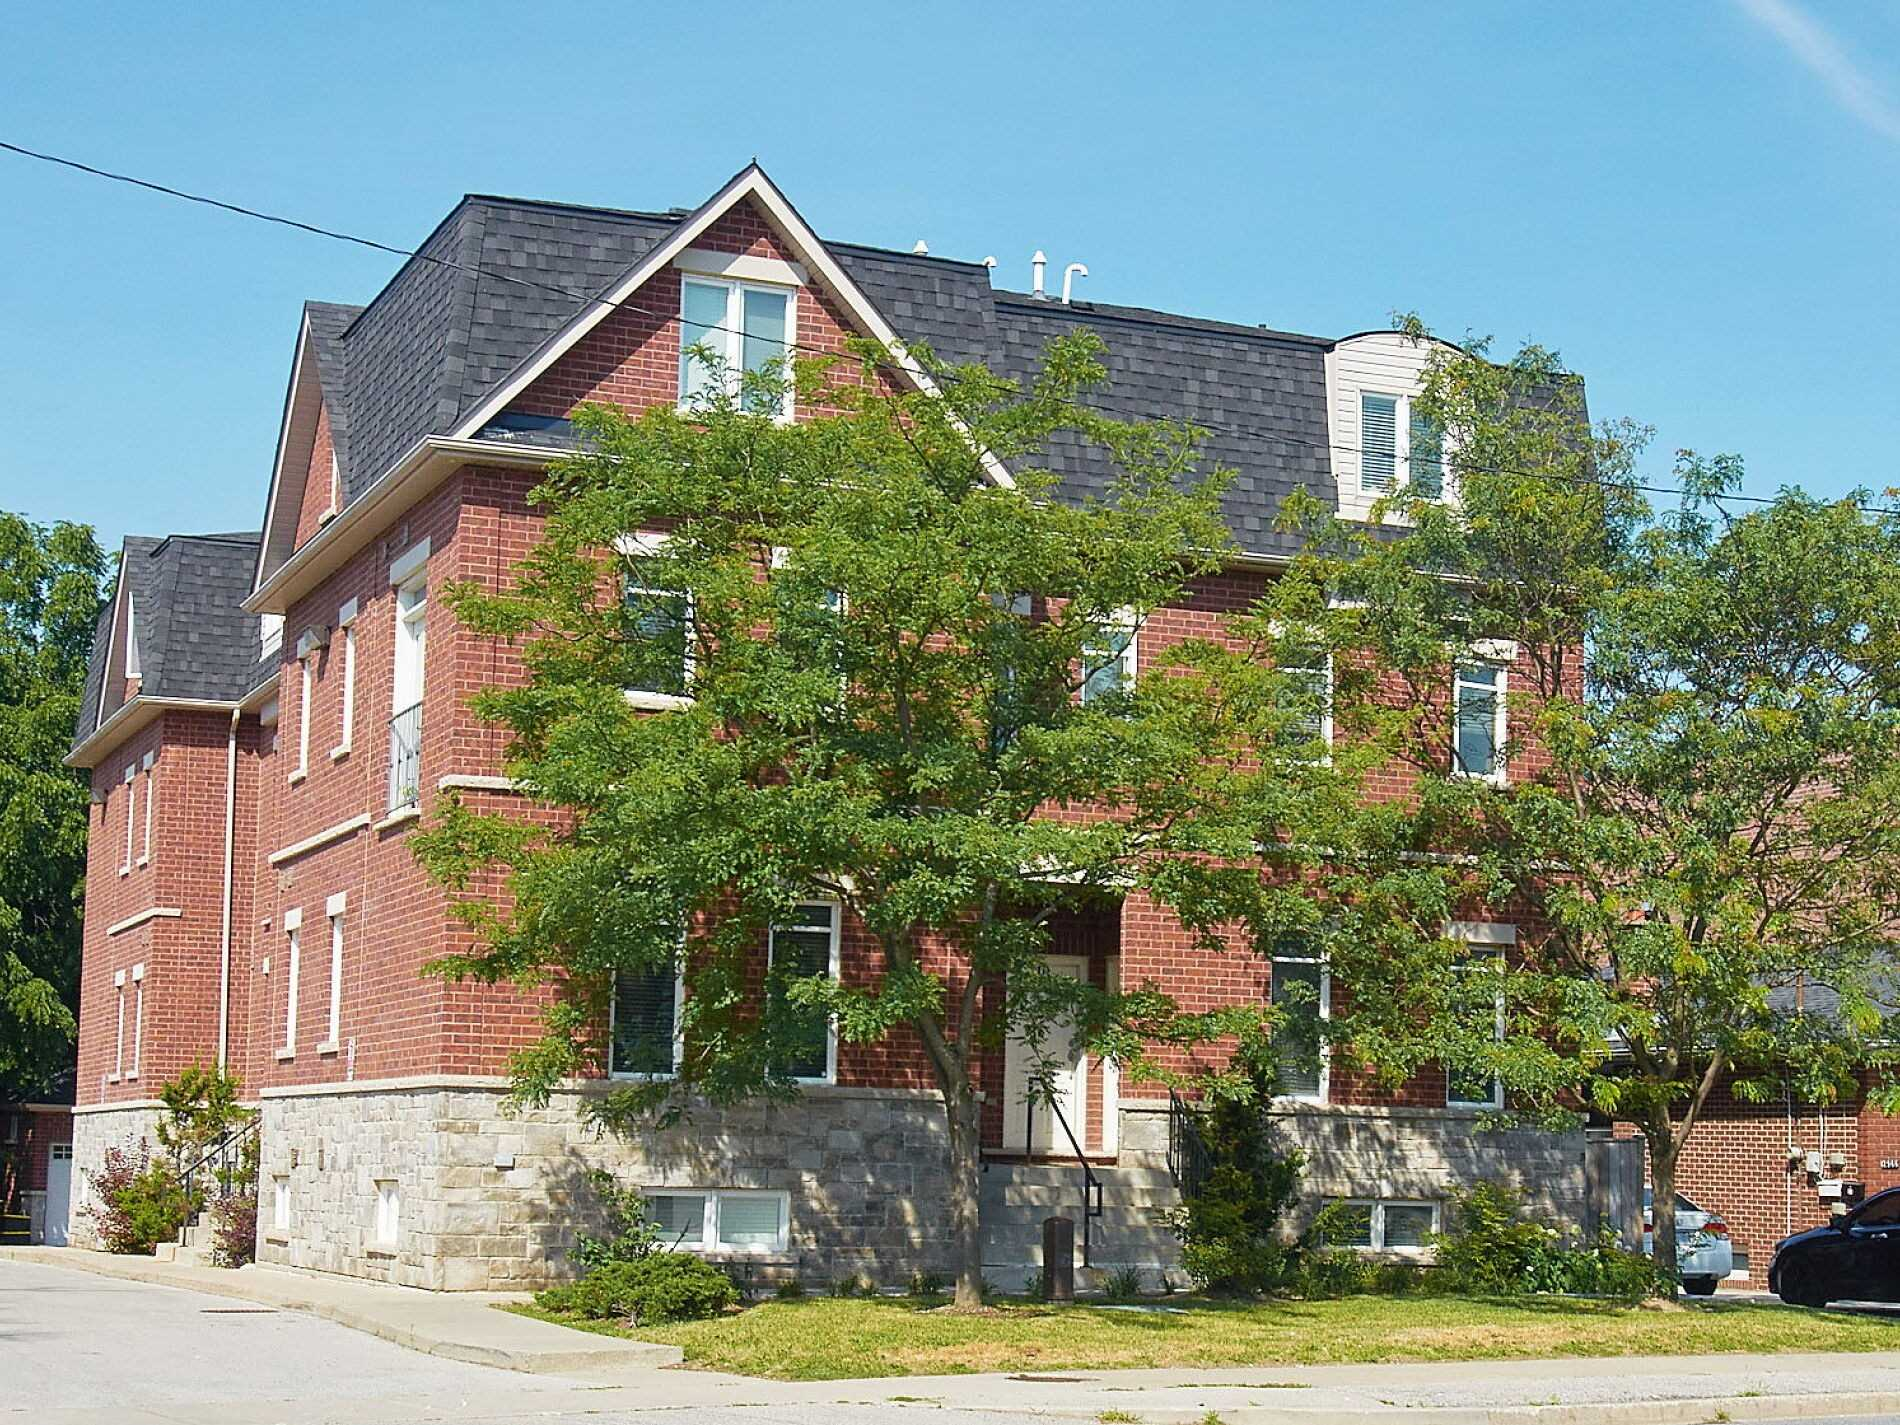 2964 Islington Ave, Toronto, Ontario M9L2K6, 2 Bedrooms Bedrooms, 5 Rooms Rooms,2 BathroomsBathrooms,Condo Townhouse,For Sale,Islington,W4846270